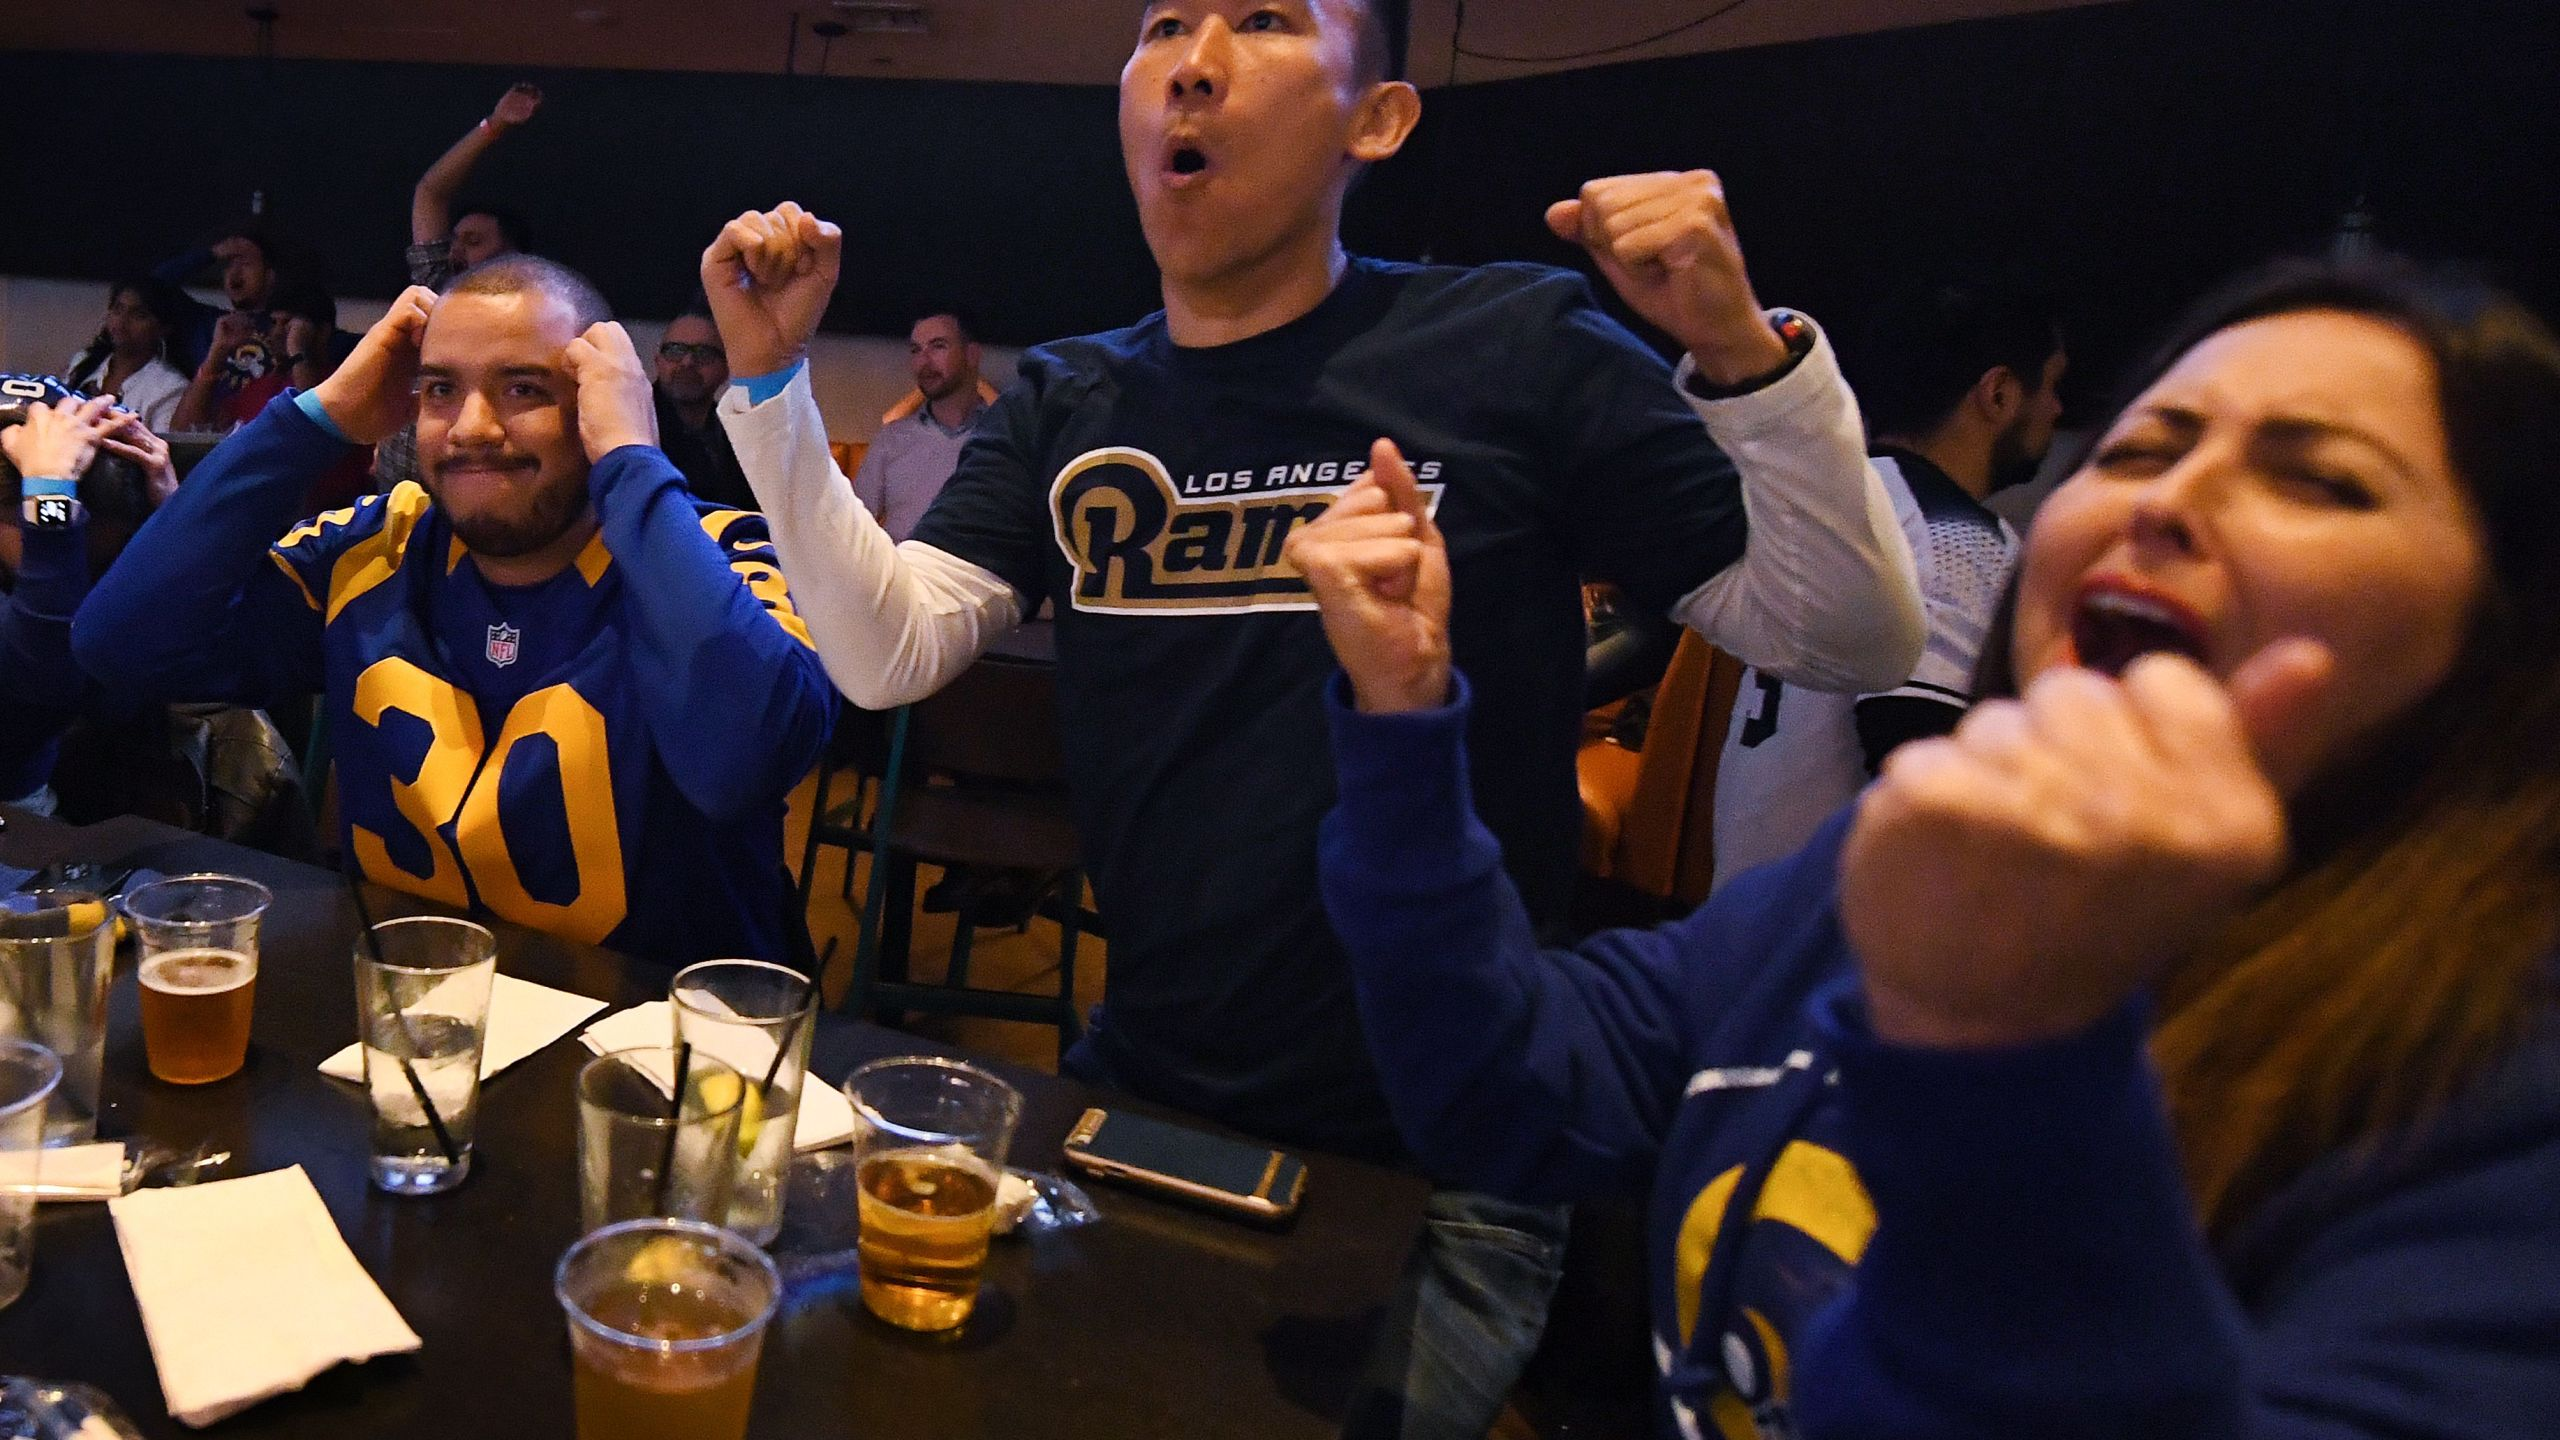 Los Angeles Rams fans reacts as they watch their team play against the New England Patriots during the Super Bowl LIII in Los Angeles on Feb. 3, 2019. (Credit: Mark RALSTON/AFP/Getty Images)